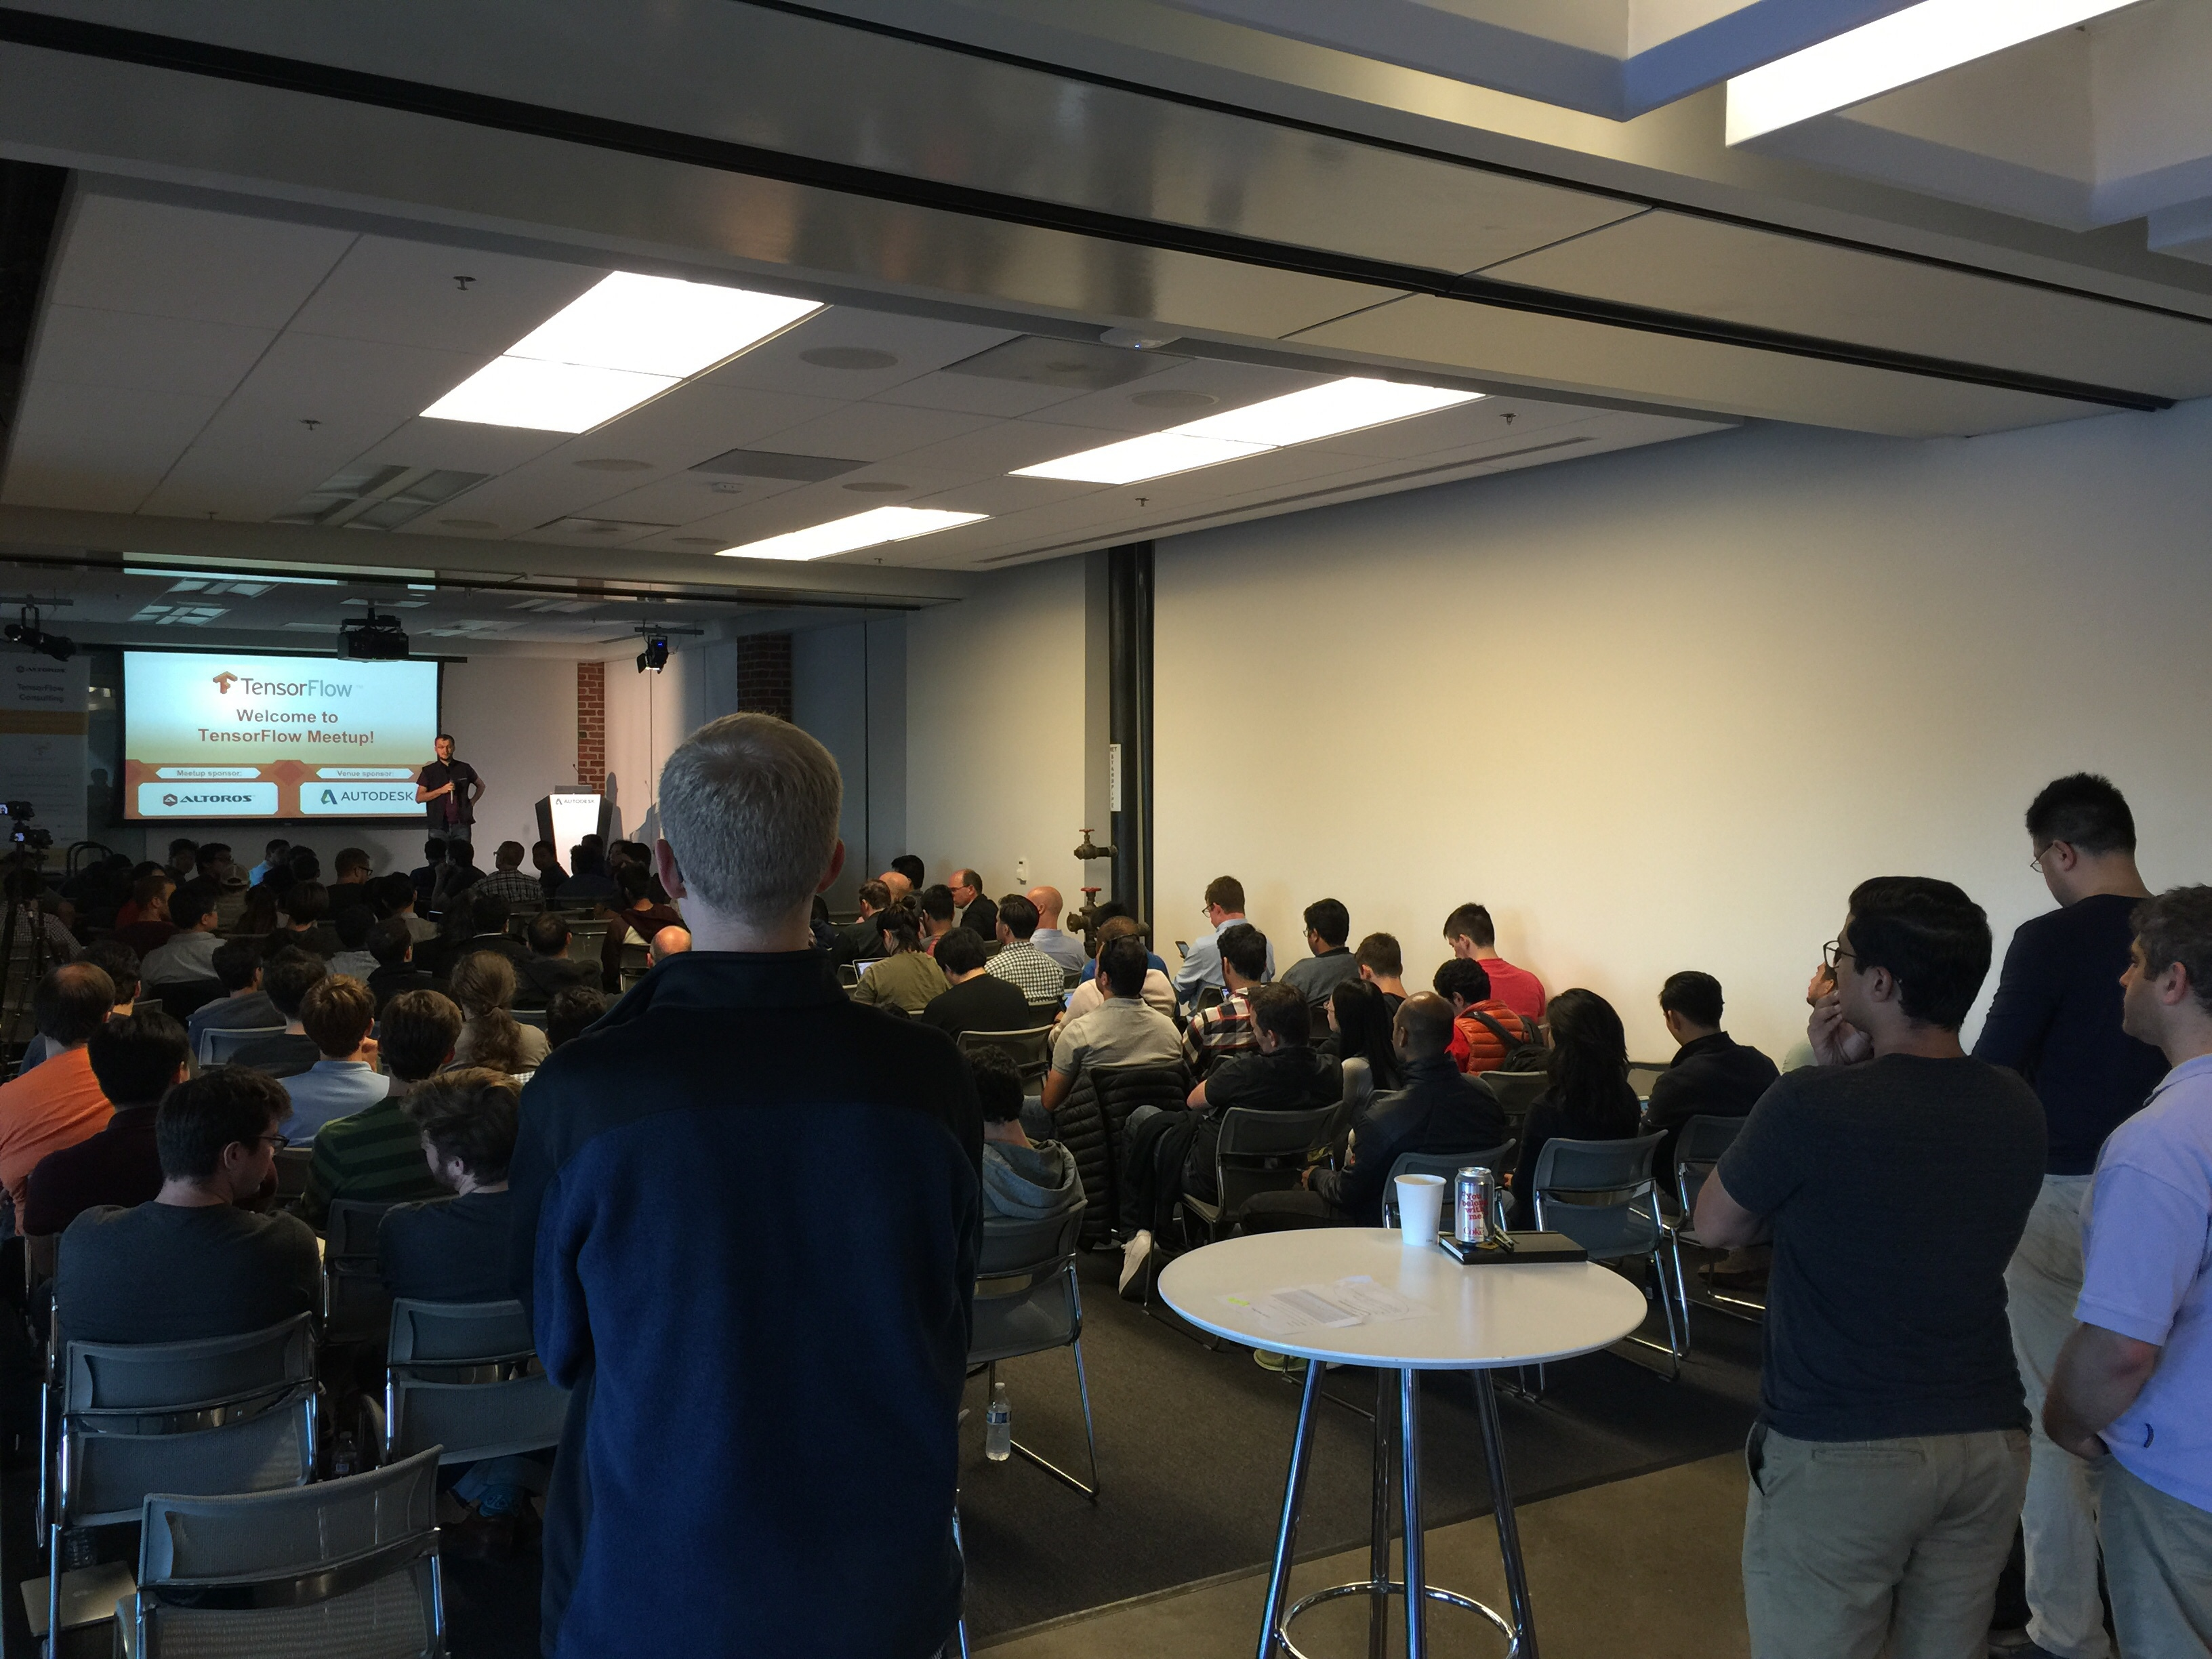 tensorflow-meetup-san-francisco-q-learning